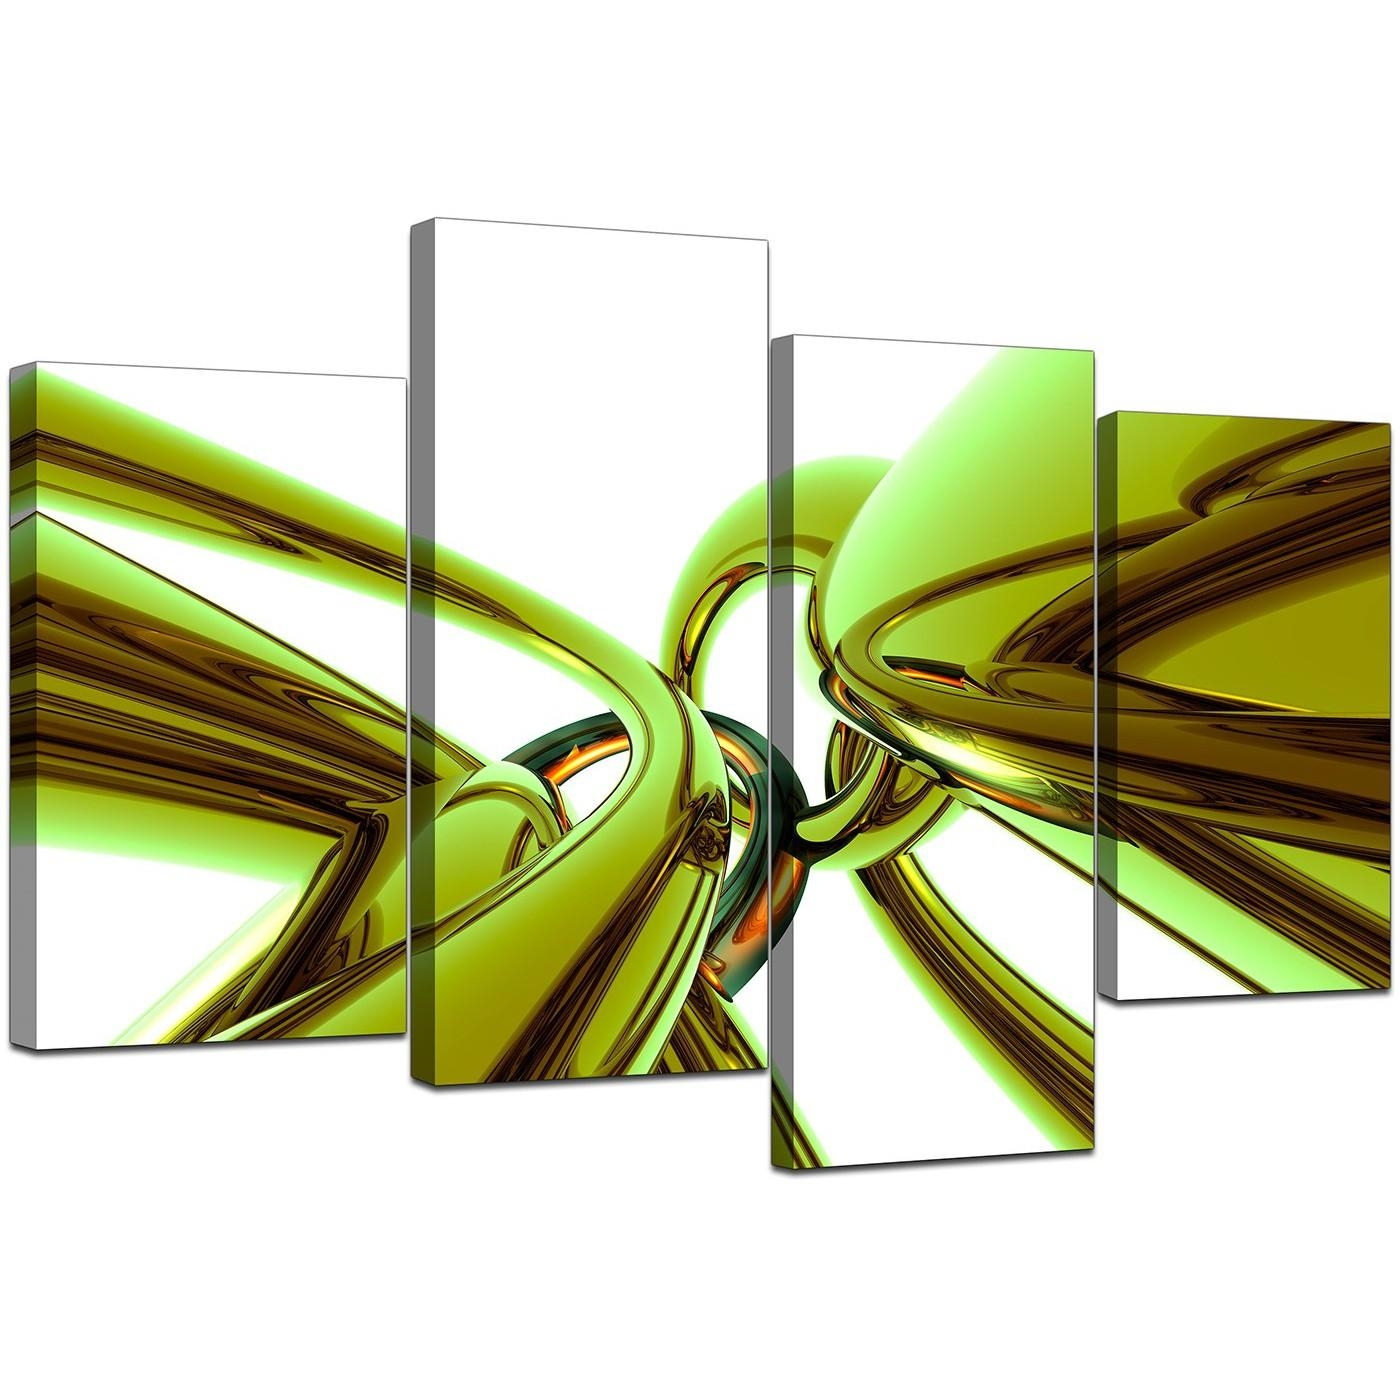 Abstract Canvas Wall Art In Green For Your Living Room – Set Of 4 Throughout Lime Green Wall Art (Image 4 of 20)